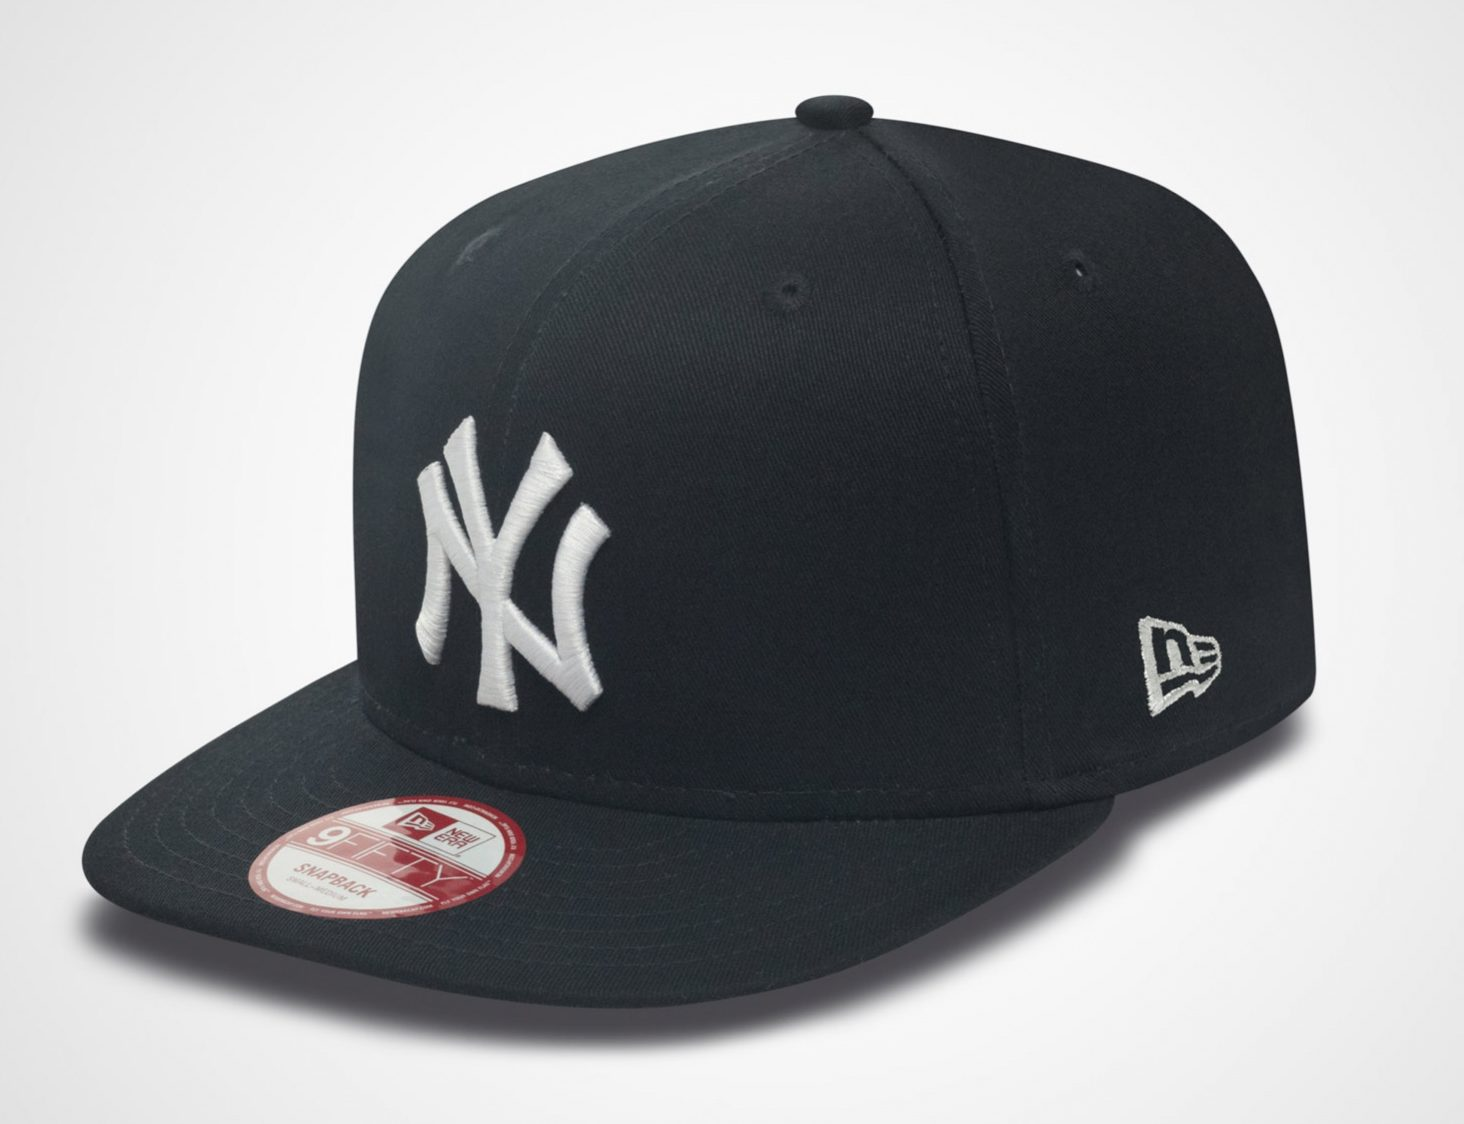 New Era Snapback in Schwarz